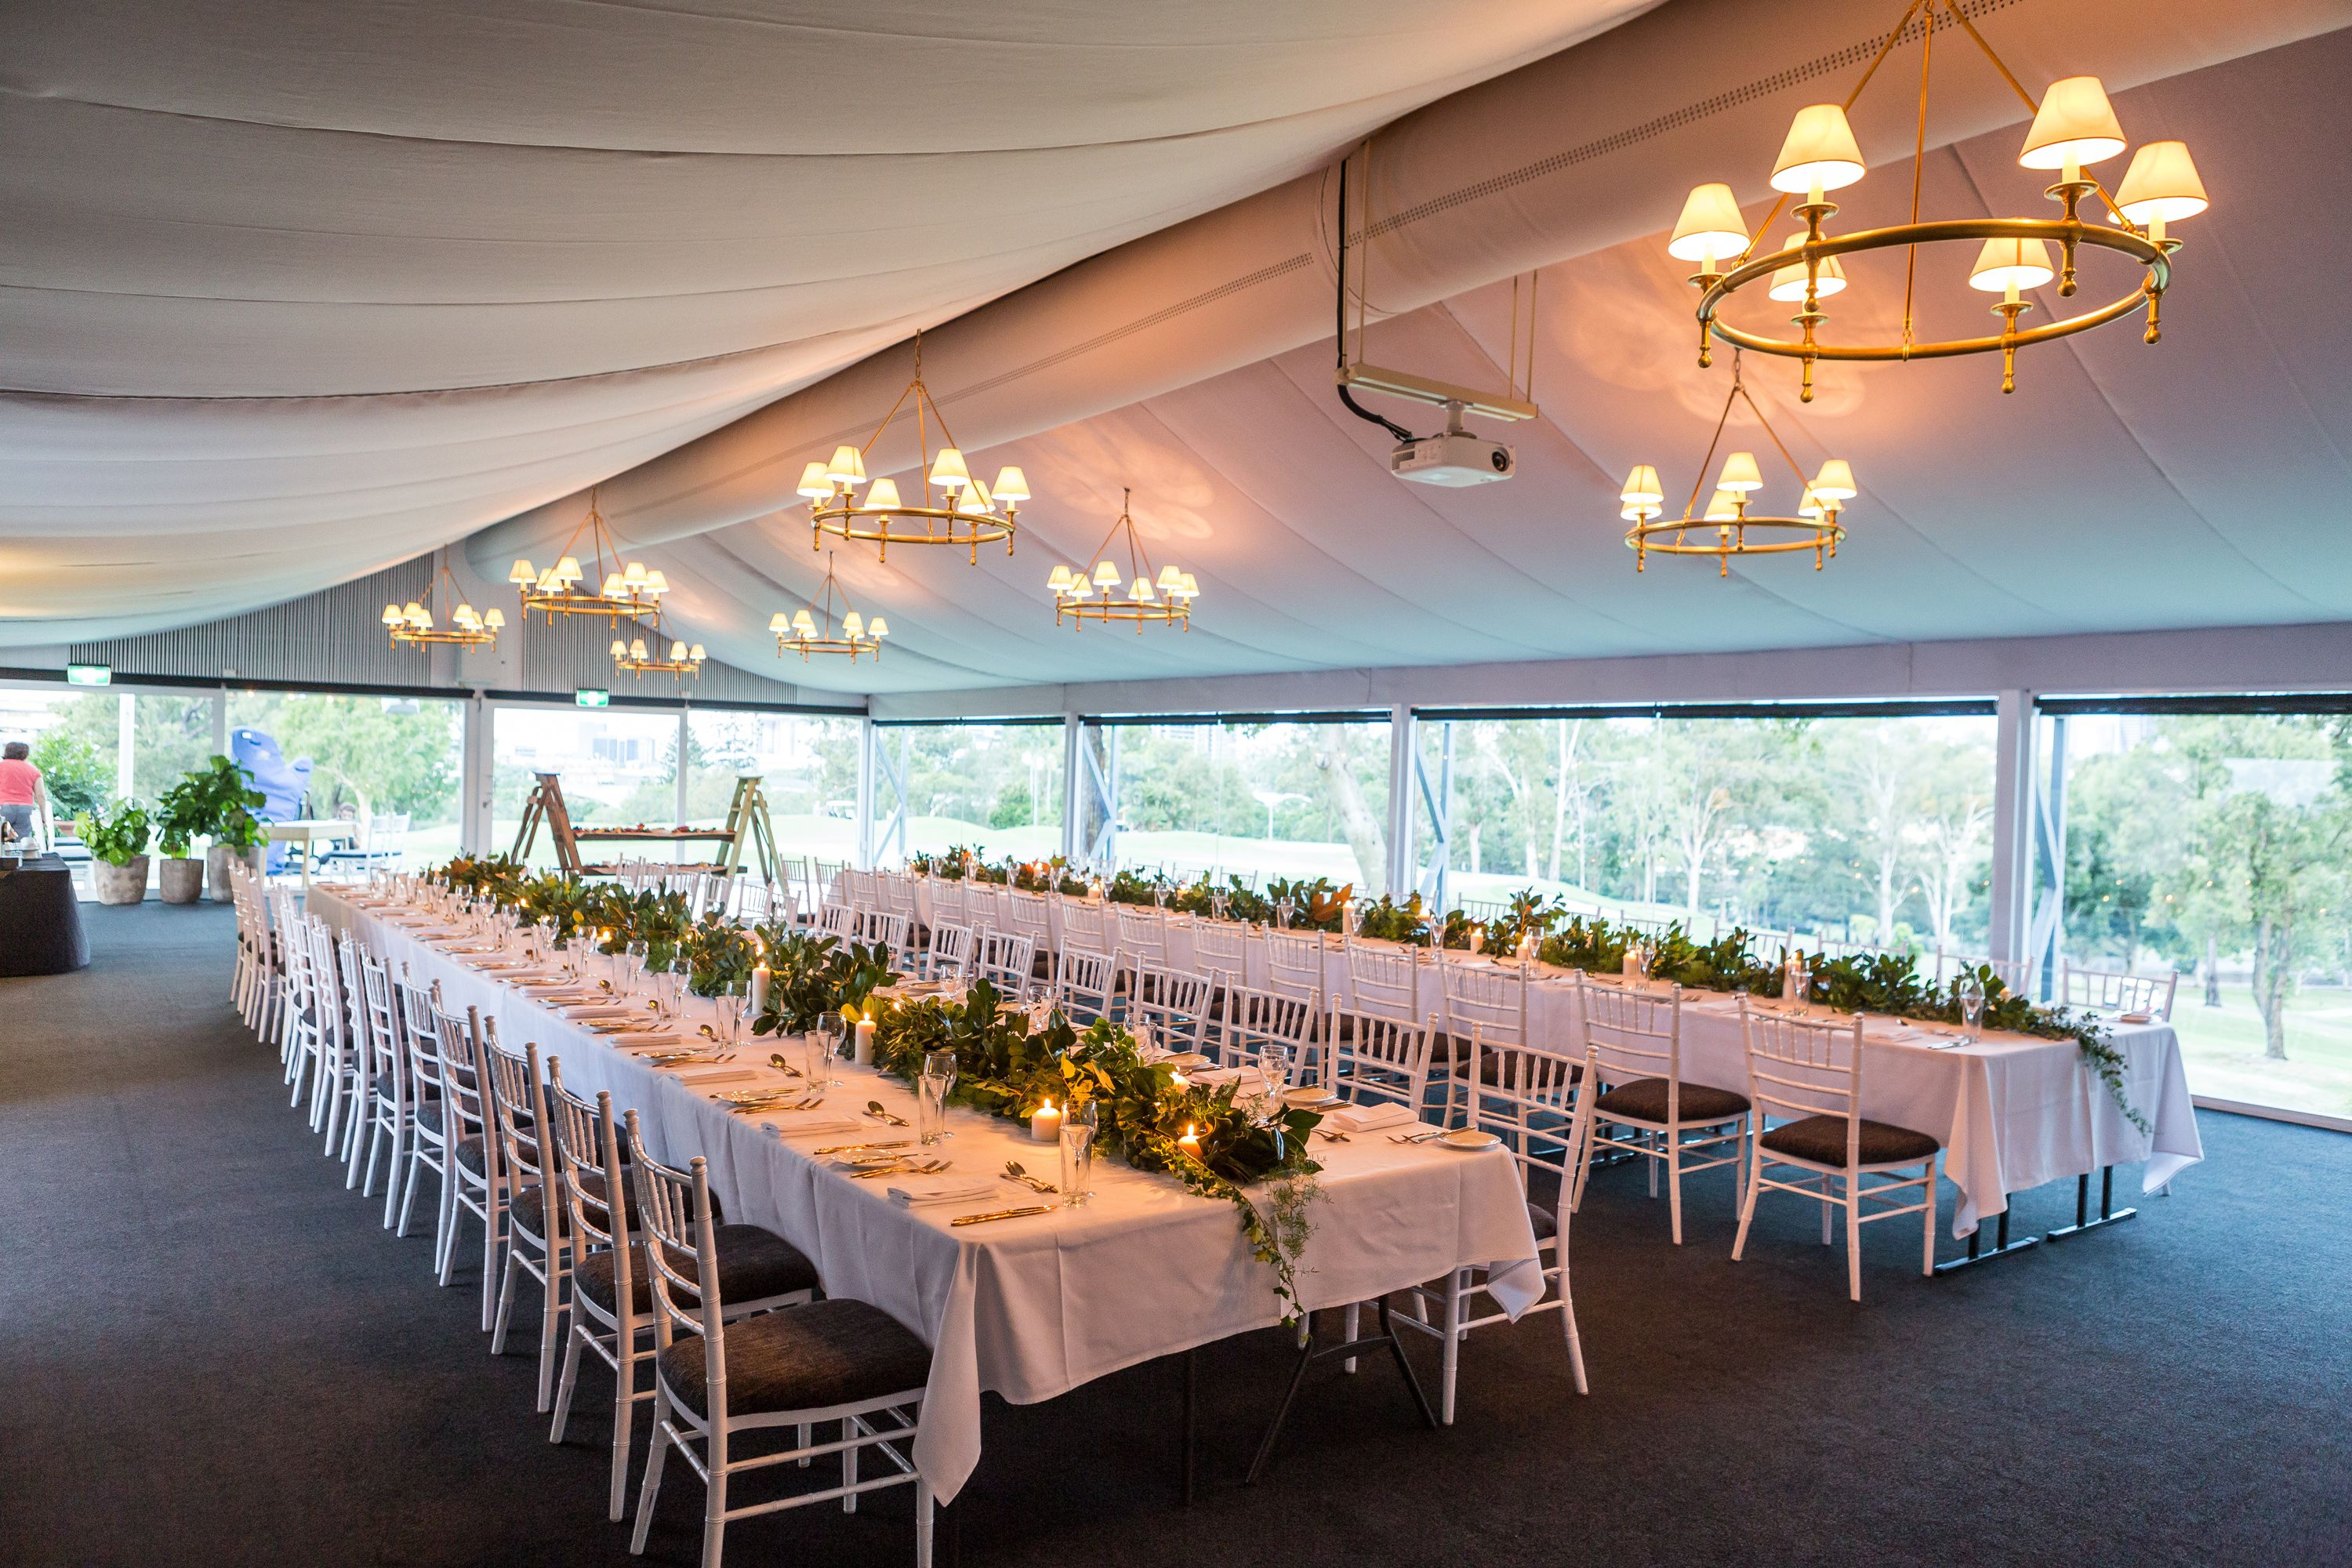 Victoria Park Is A Stunning Brisbane Wedding Venue All Reception Rooms Feature Private Outdoor